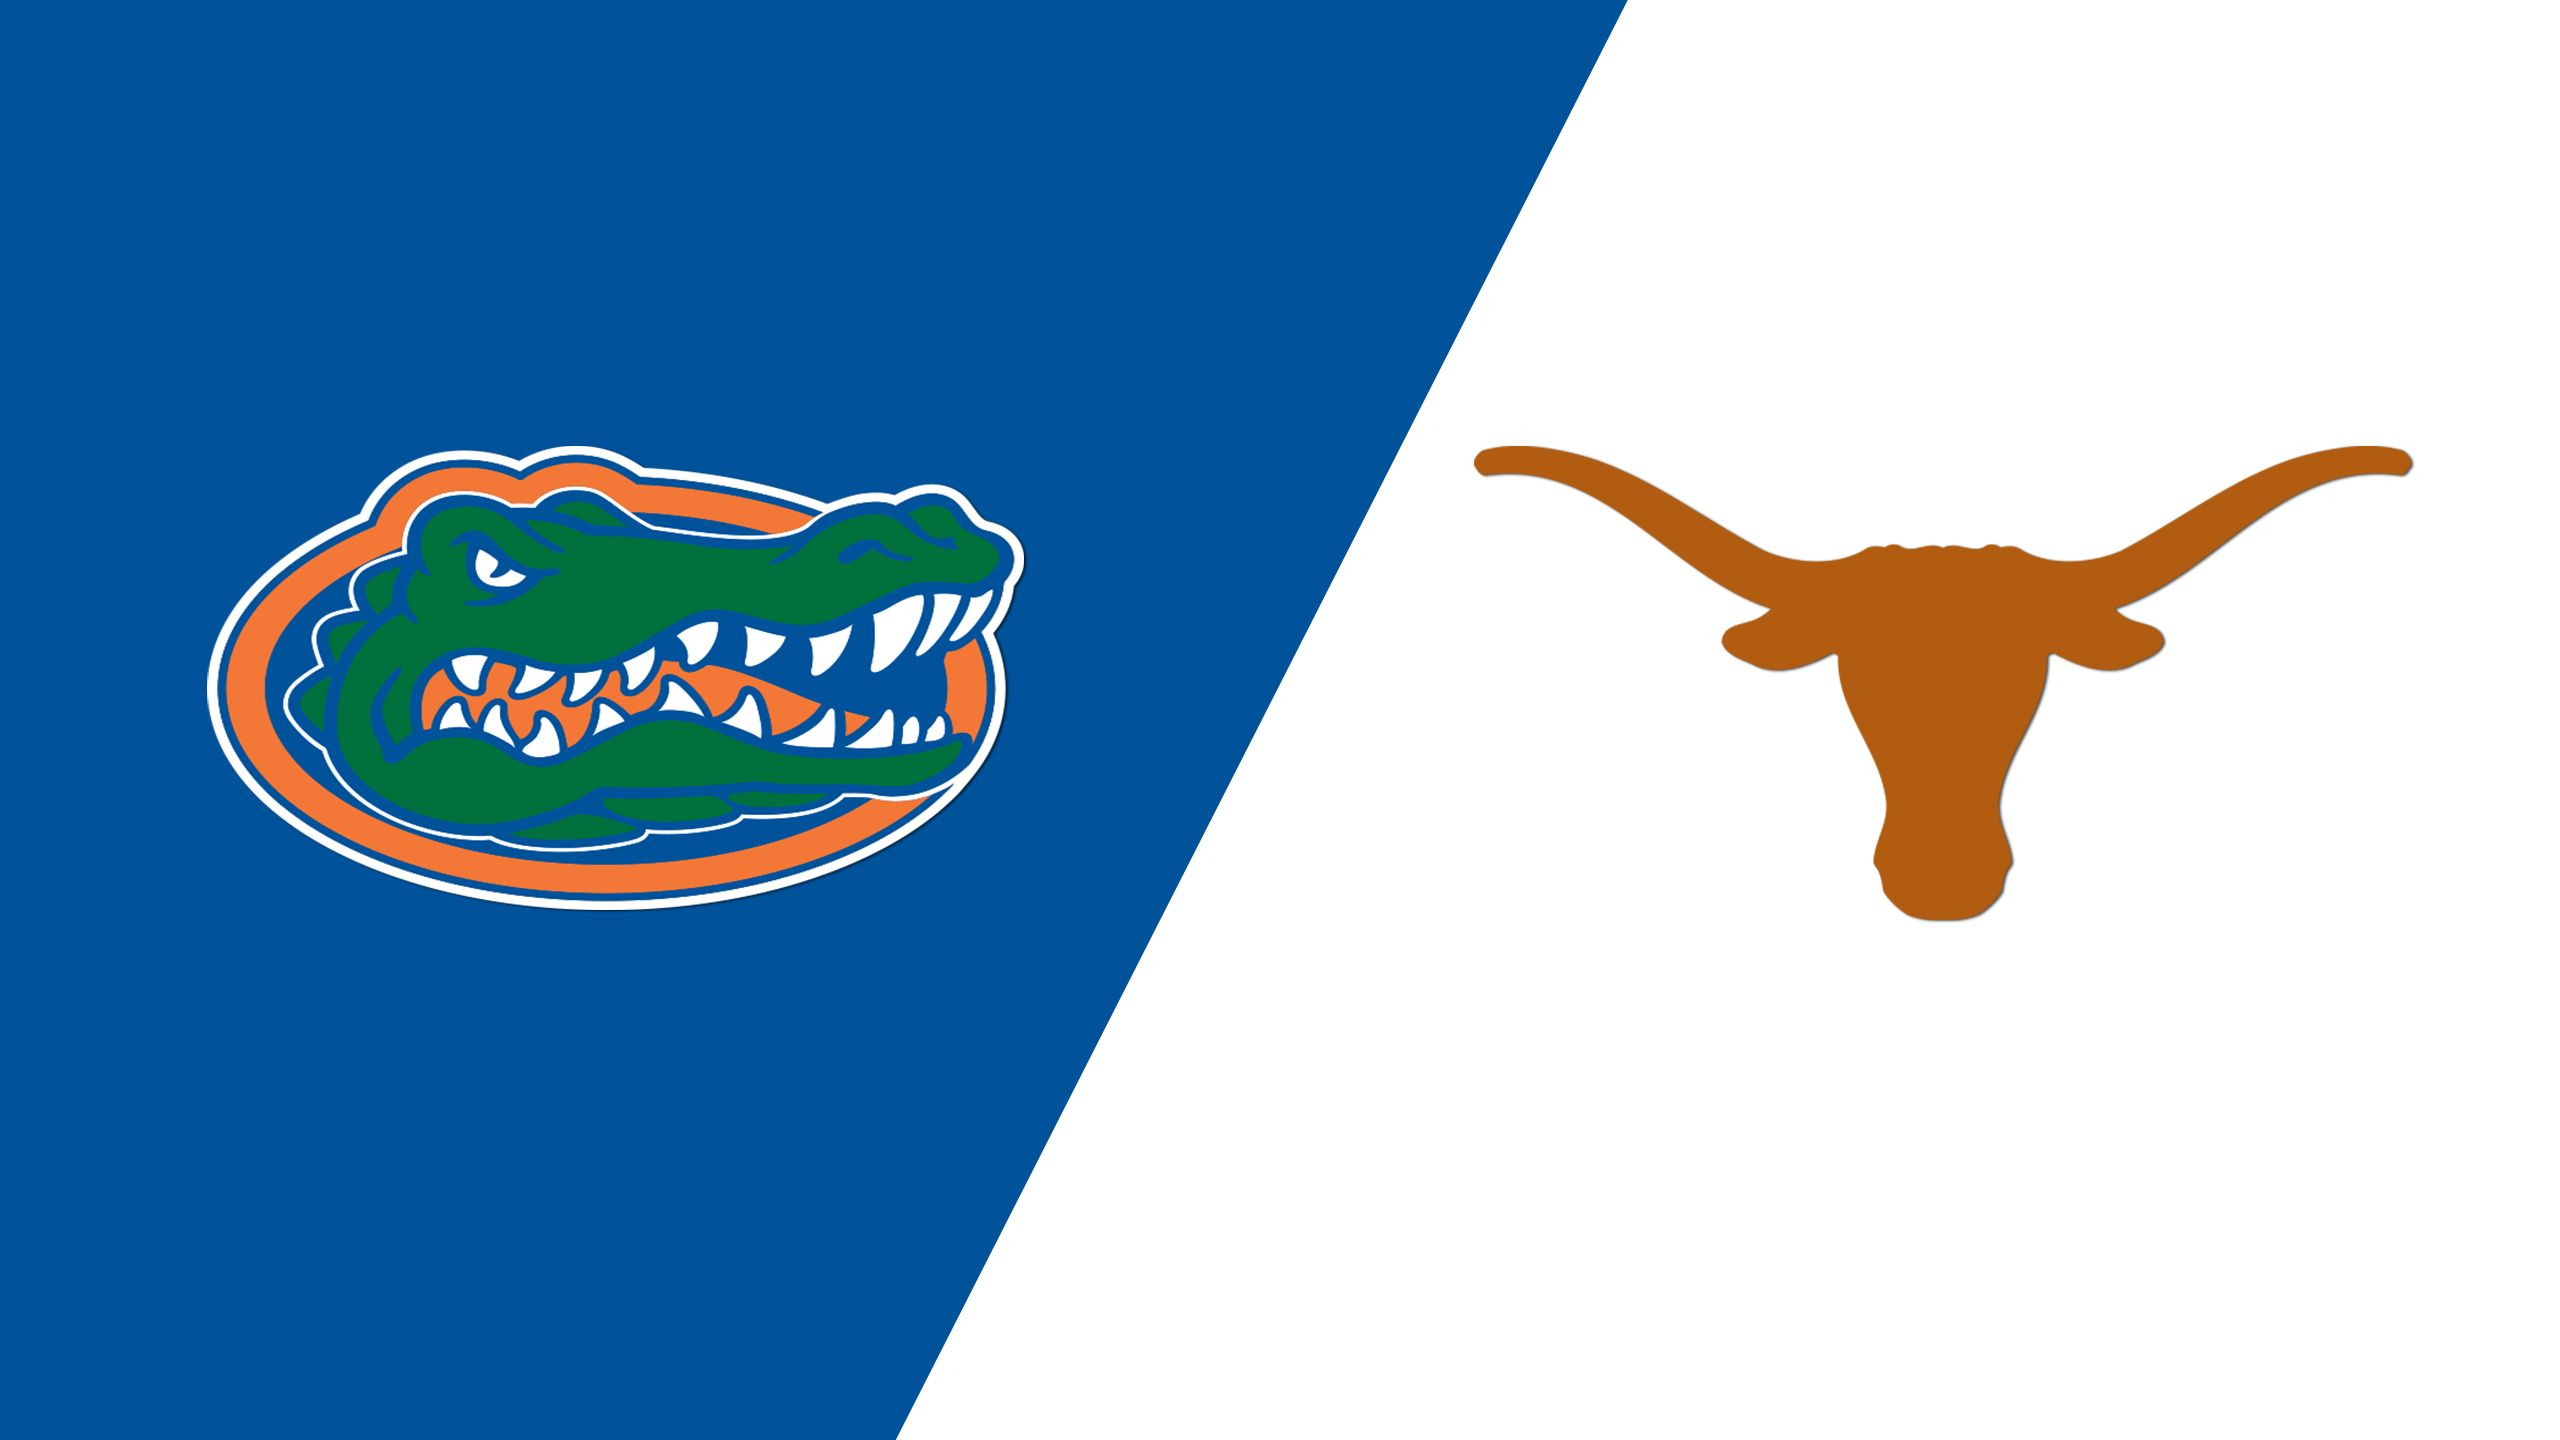 #1 Florida vs. #13 Texas (Game 7) (College World Series)